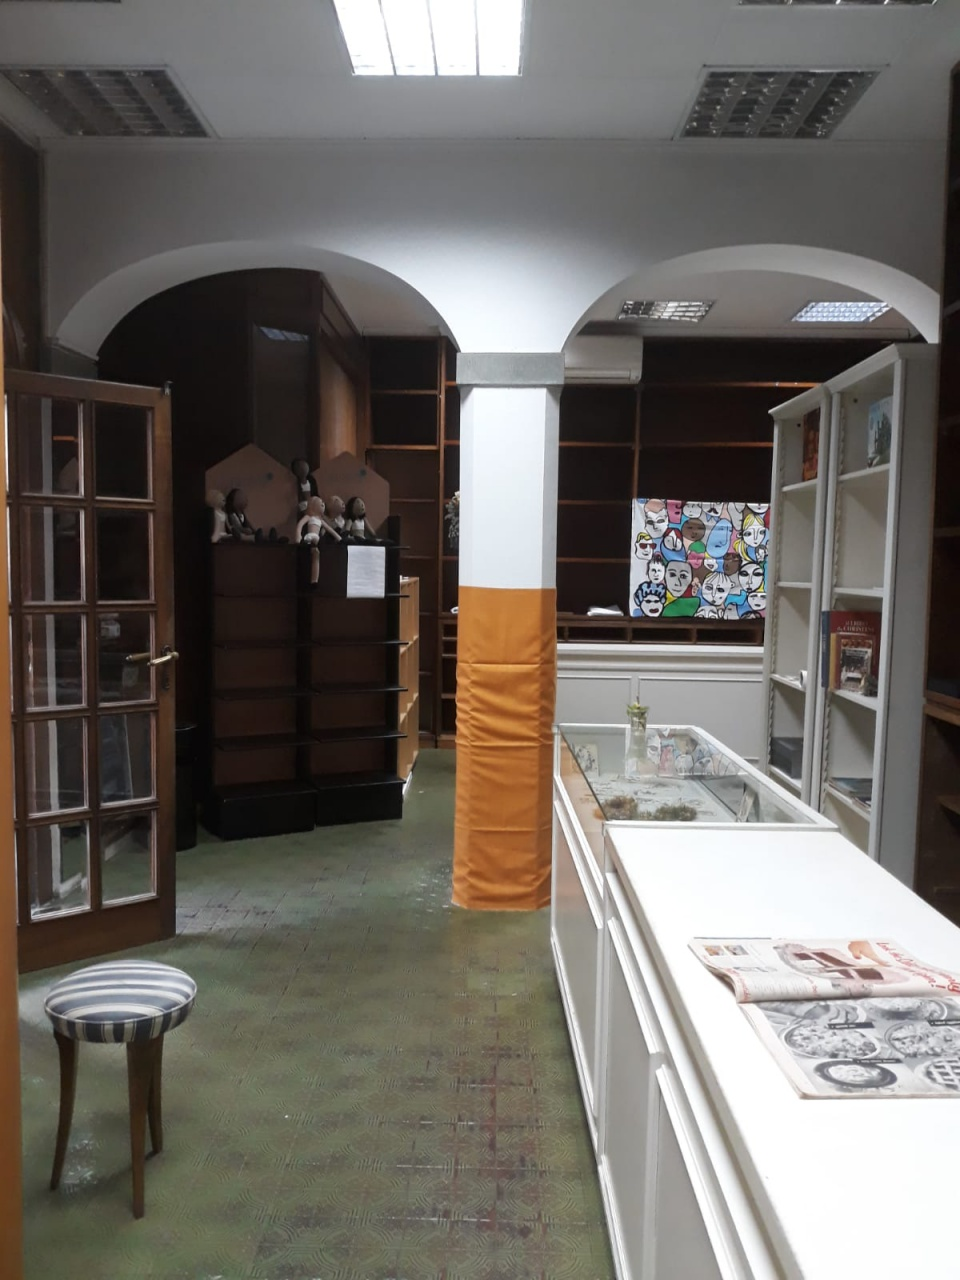 Locale Commerciale PRATO AF15